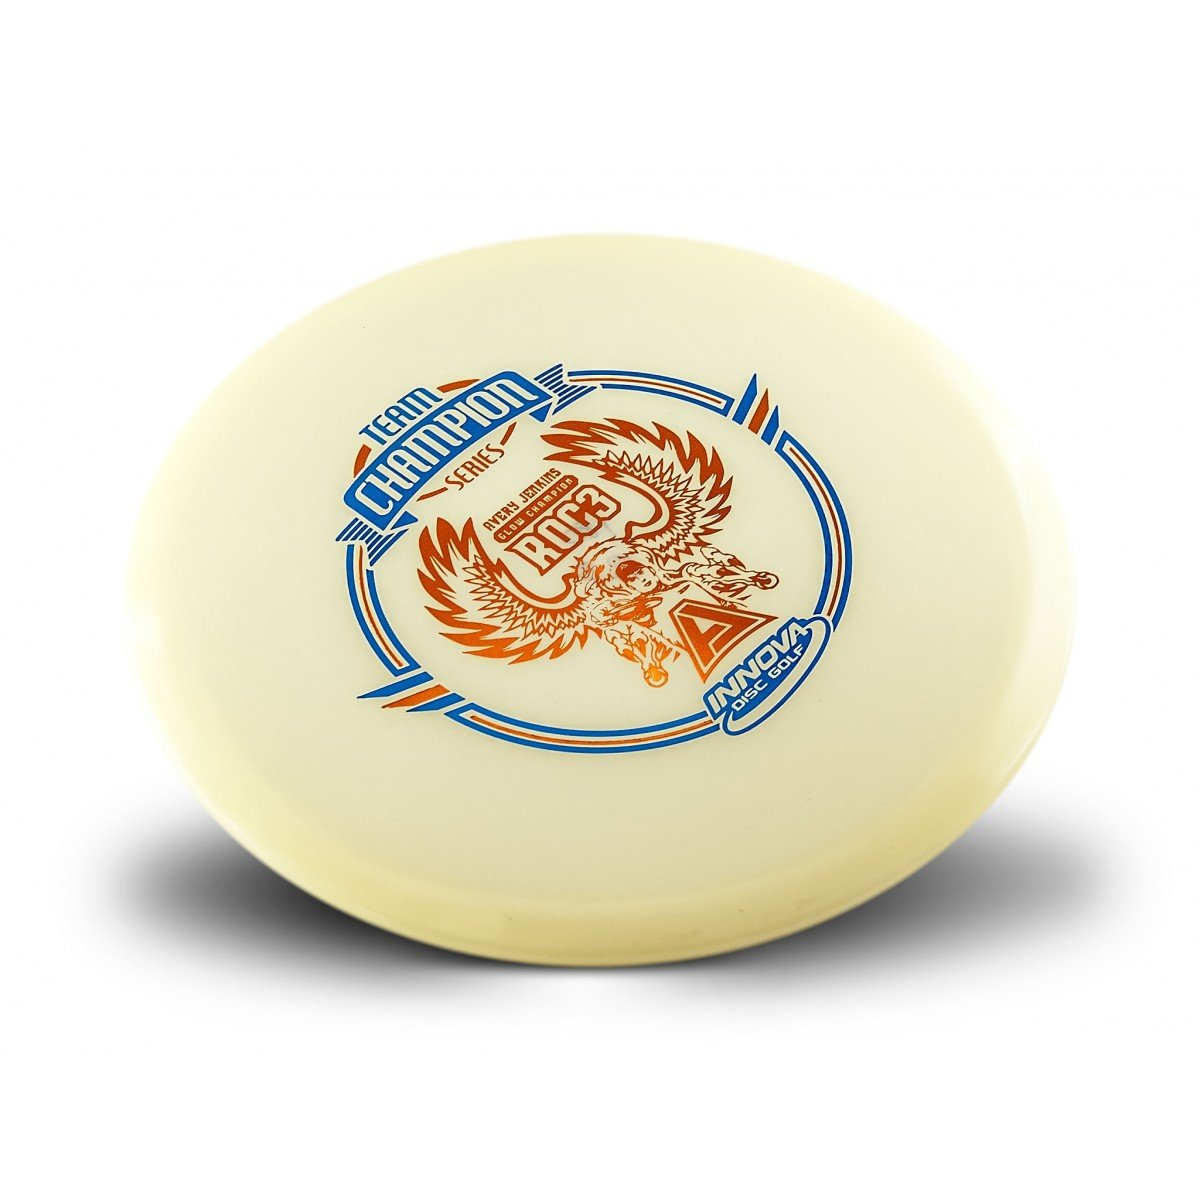 Innova Limited Edition Team Champion Tour Series Avery Jenkins Champion Glow Roc3 Mid-range Disc Golf Disc (Stamp color will vary)